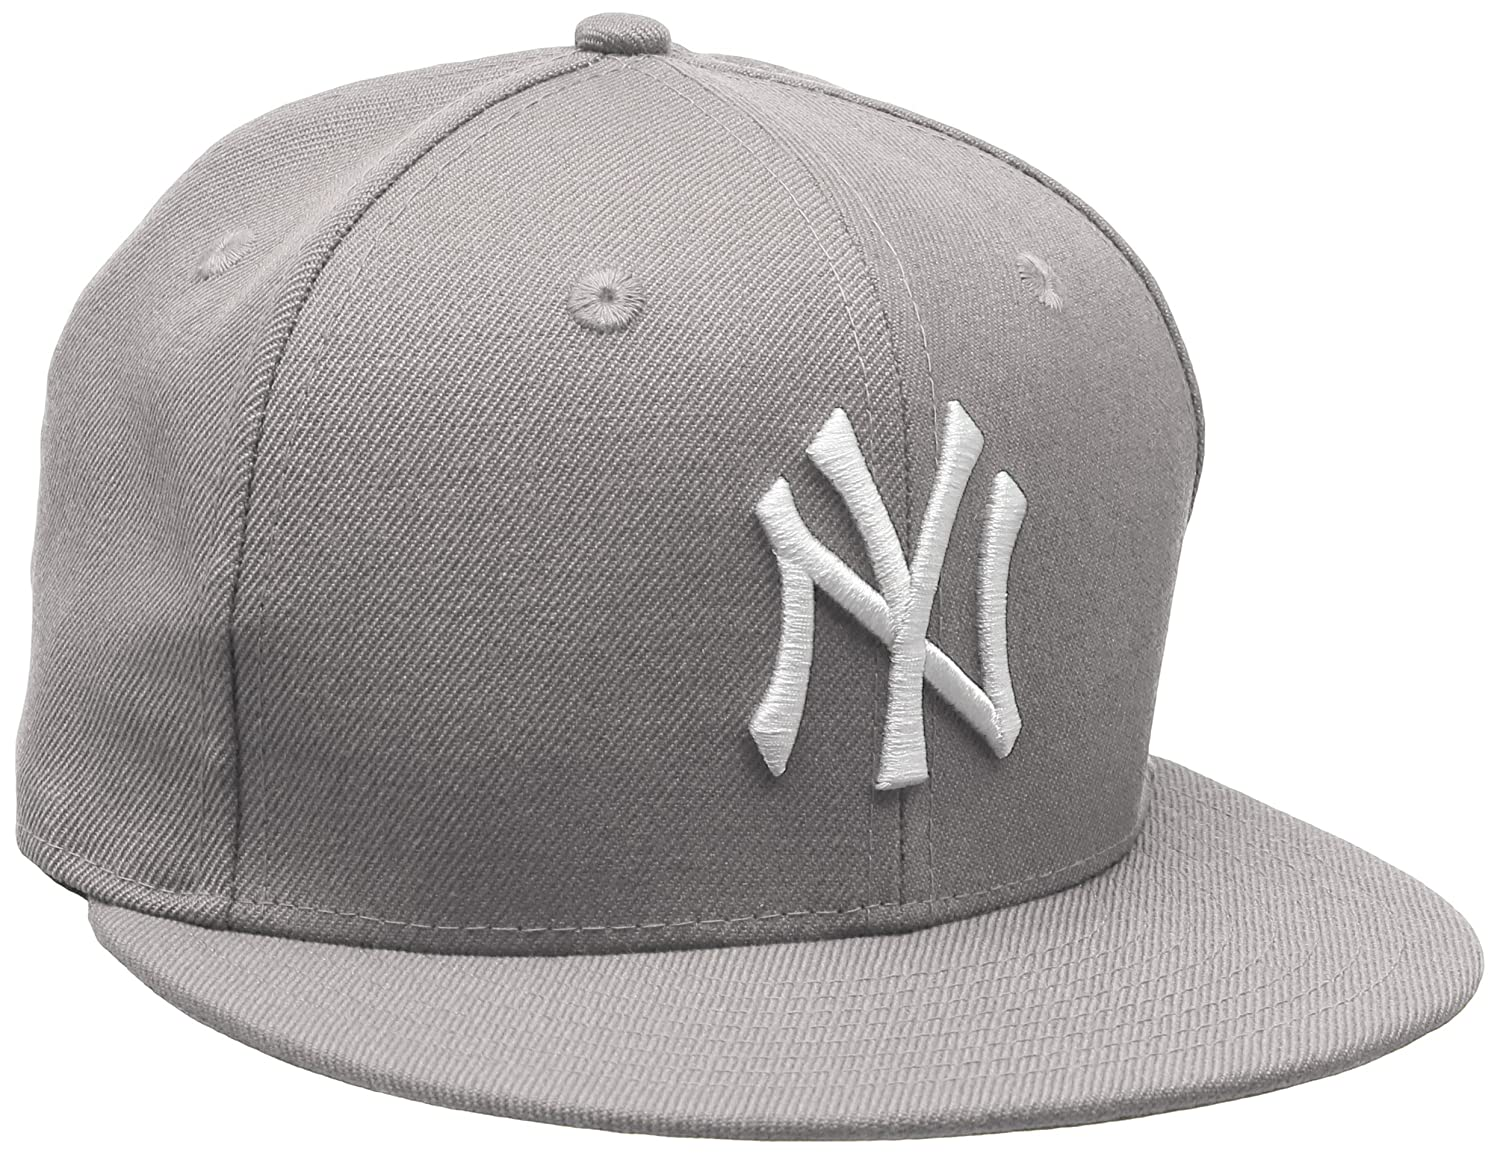 ca3927a77494a Amazon.com   New Era 59Fifty Fitted Cap - MLB New York Yankees   Clothing